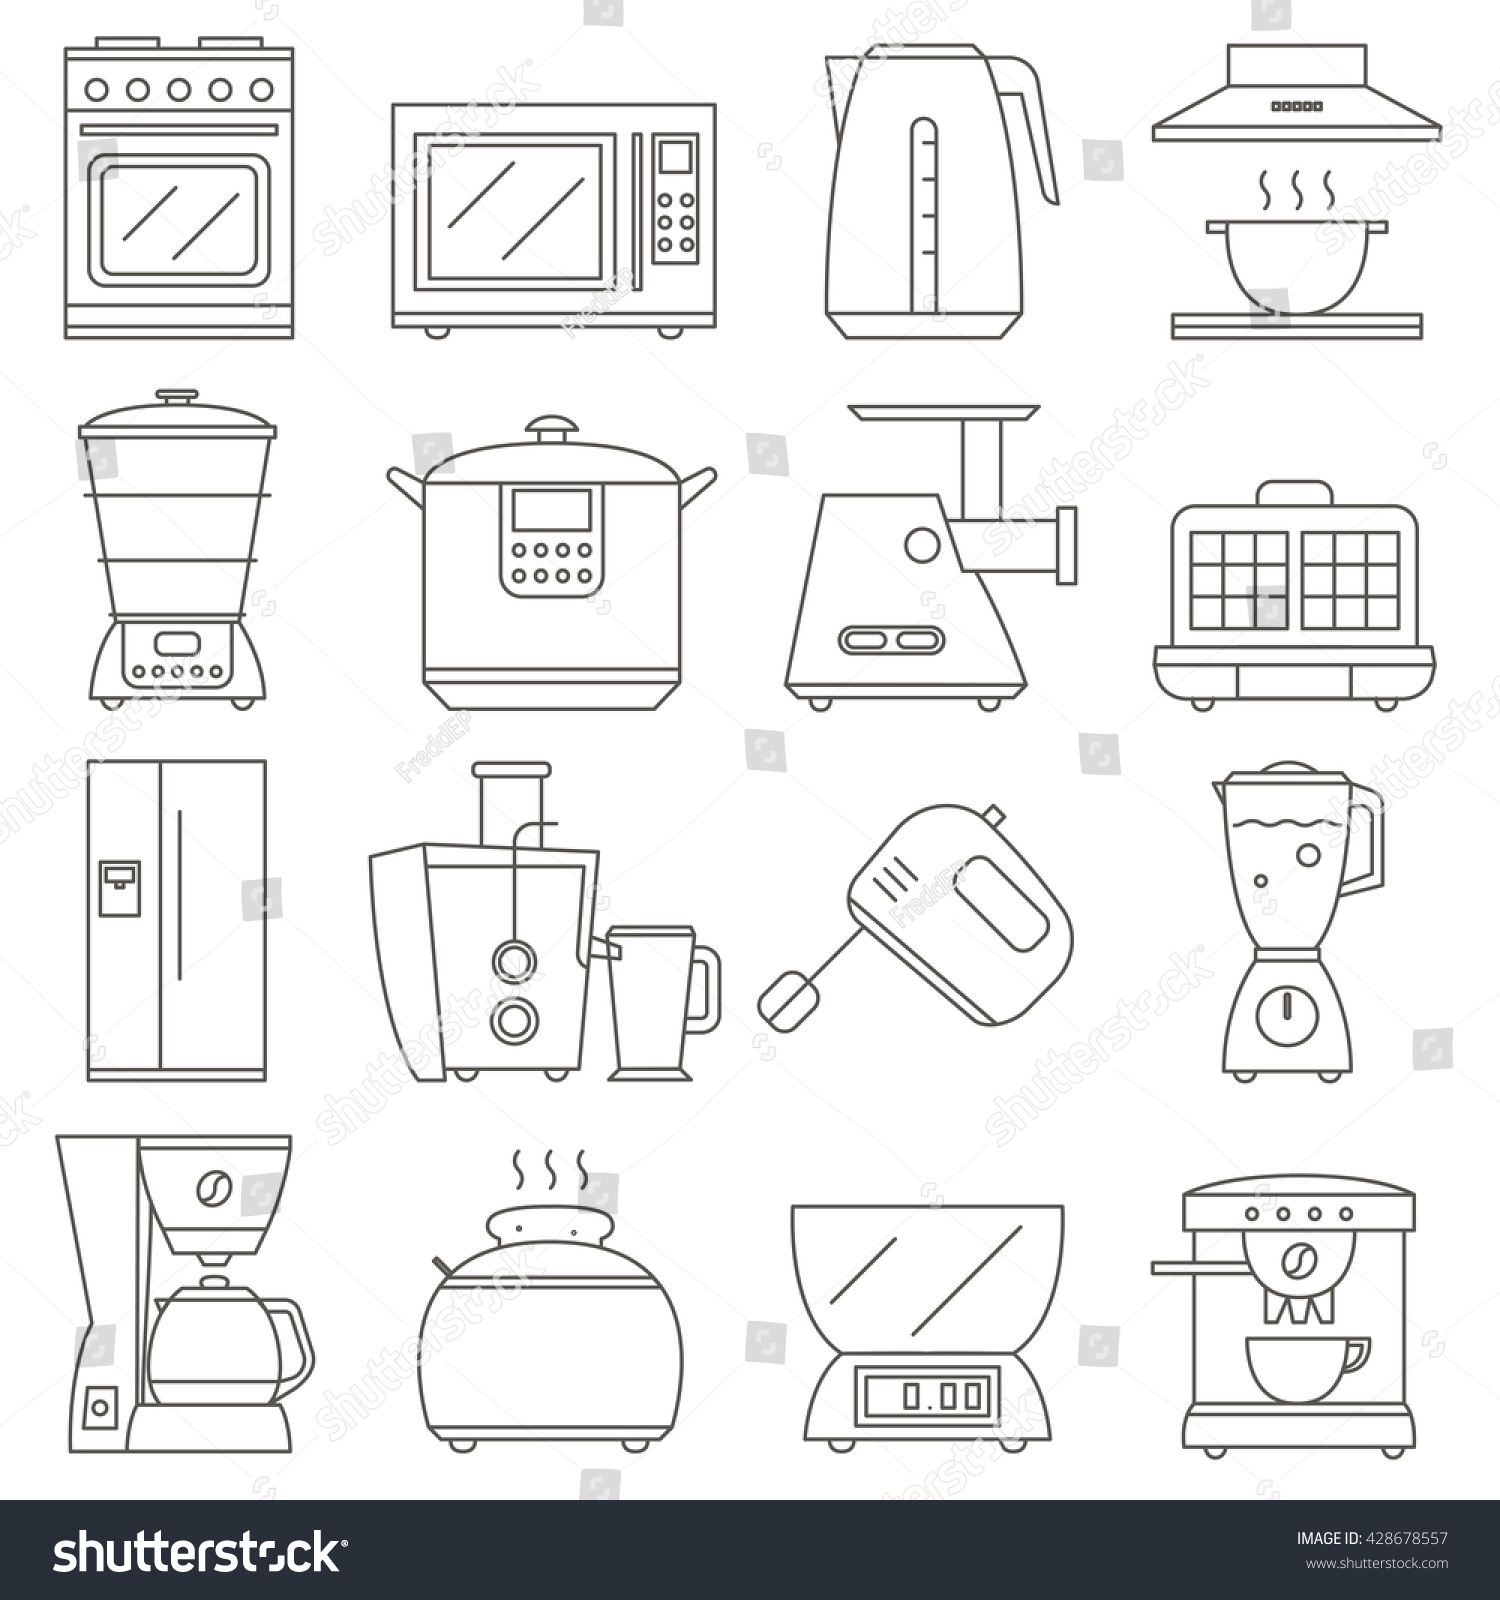 big set of line icon of electrical kitchen appliances isolated on white  background, vector flat